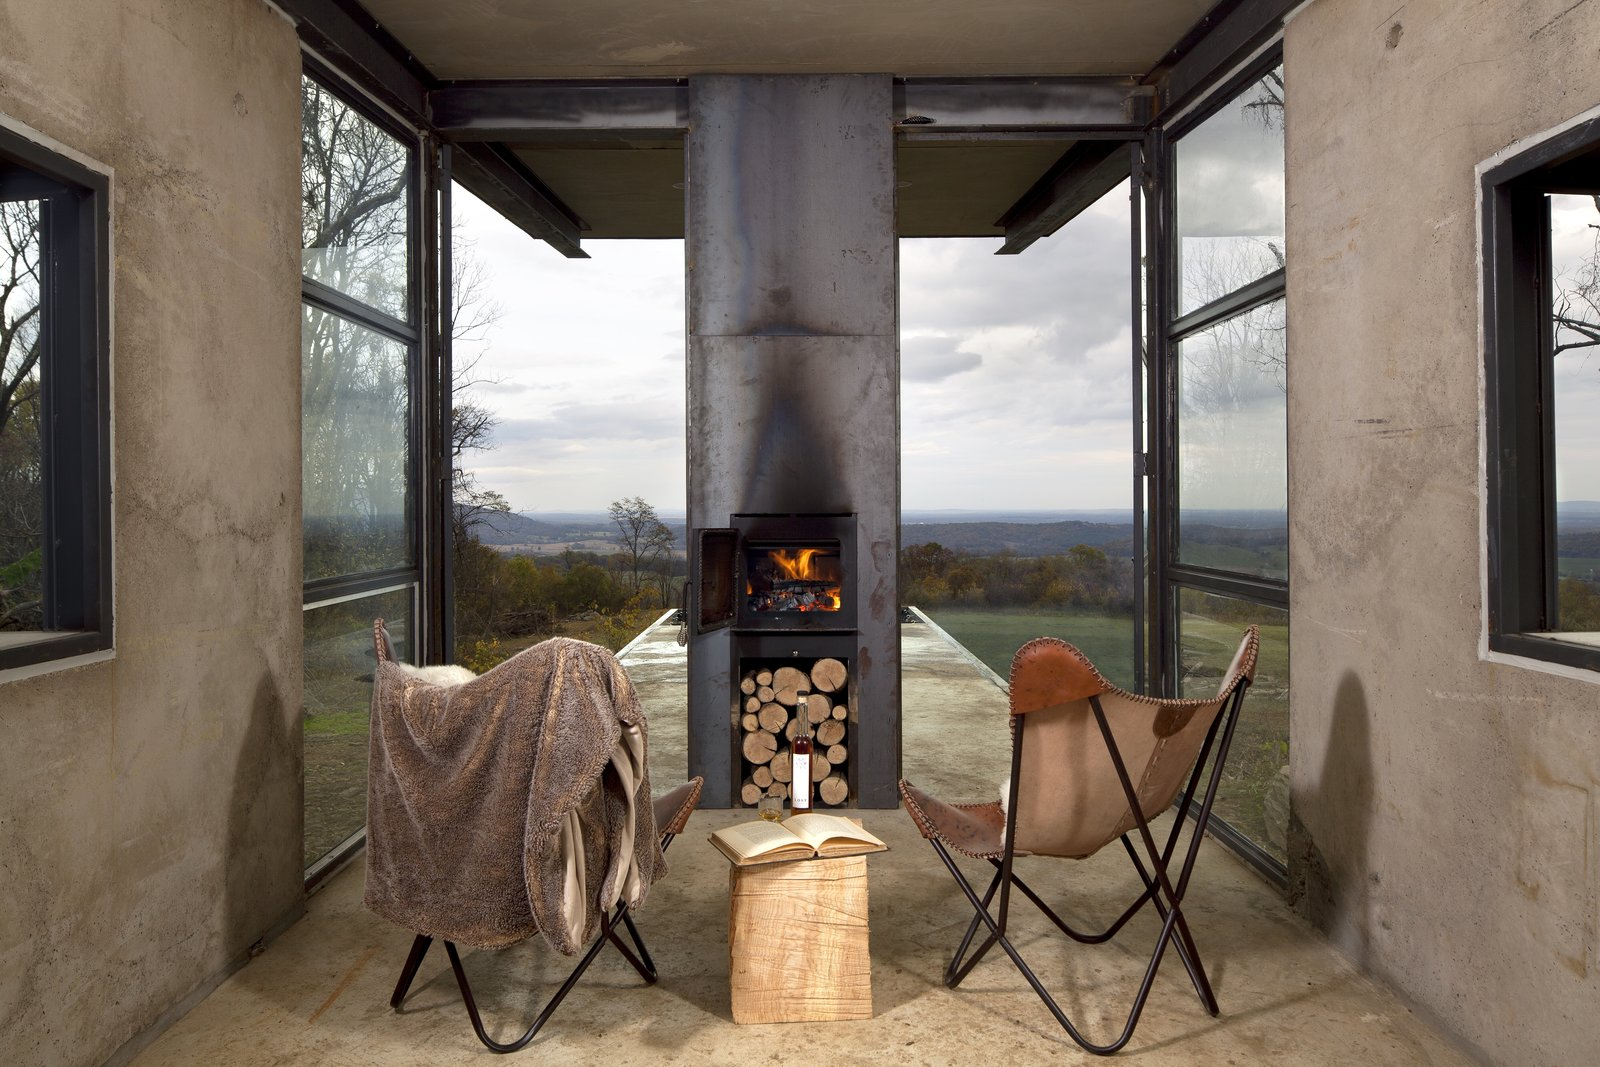 Tiny concrete cabin makes a cool off-grid getaway